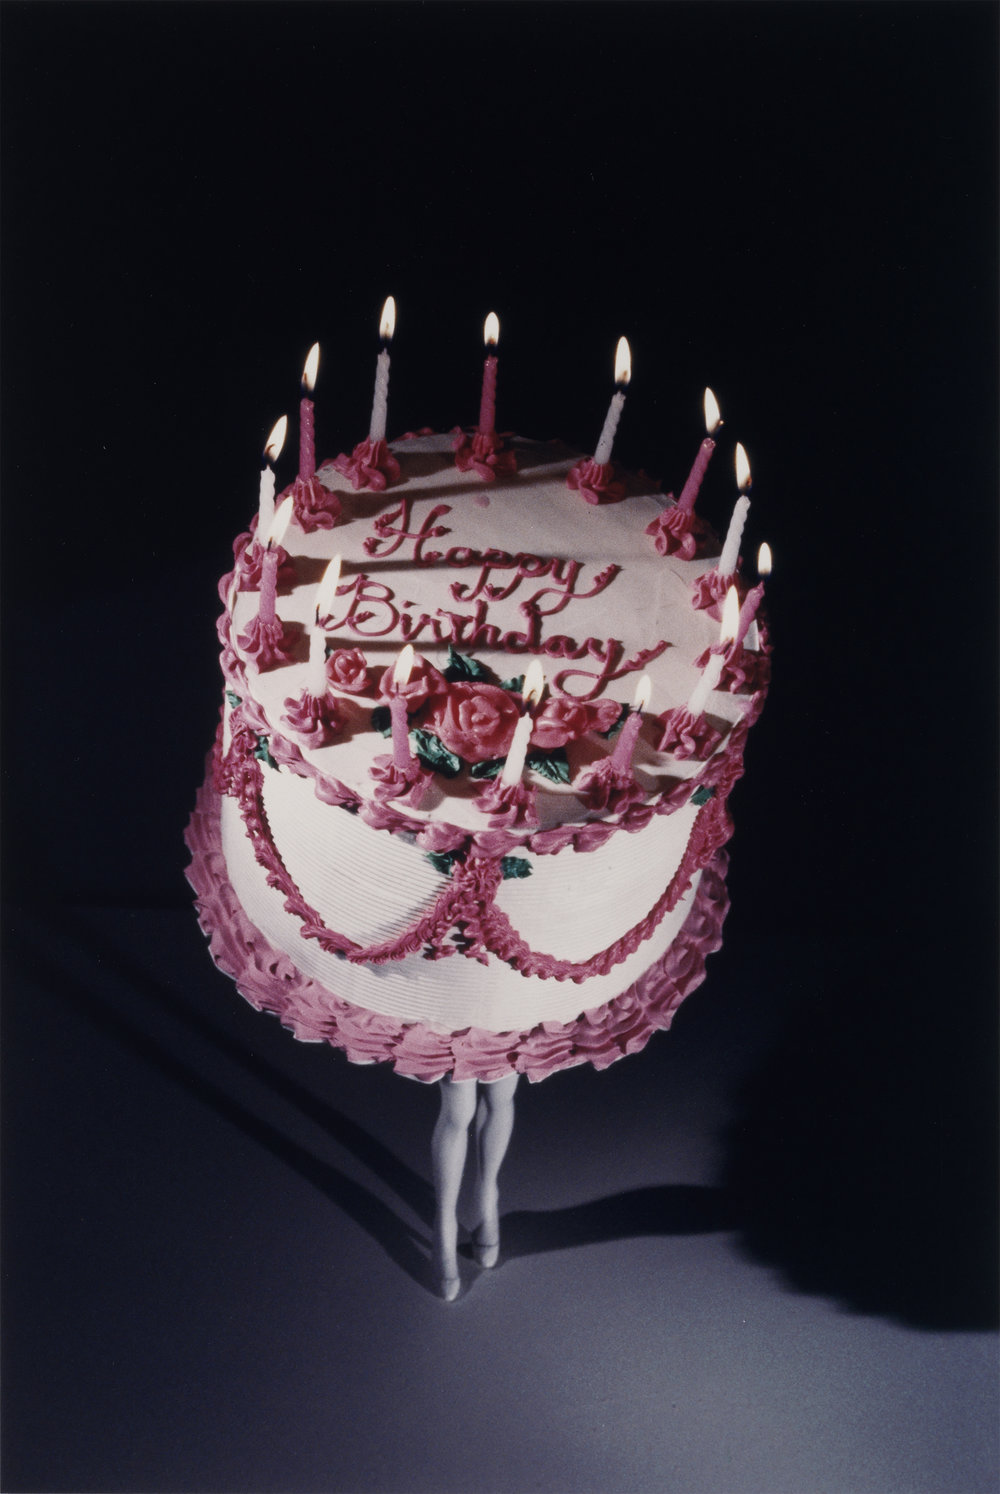 Laurie Simmons, Walking Cake II, 1989, Cibachrome print, 11 3/4 x 7 7/8 inches, Tang Teaching Museum collection, gift of Eileen and Michael Cohen, 2018.1.17